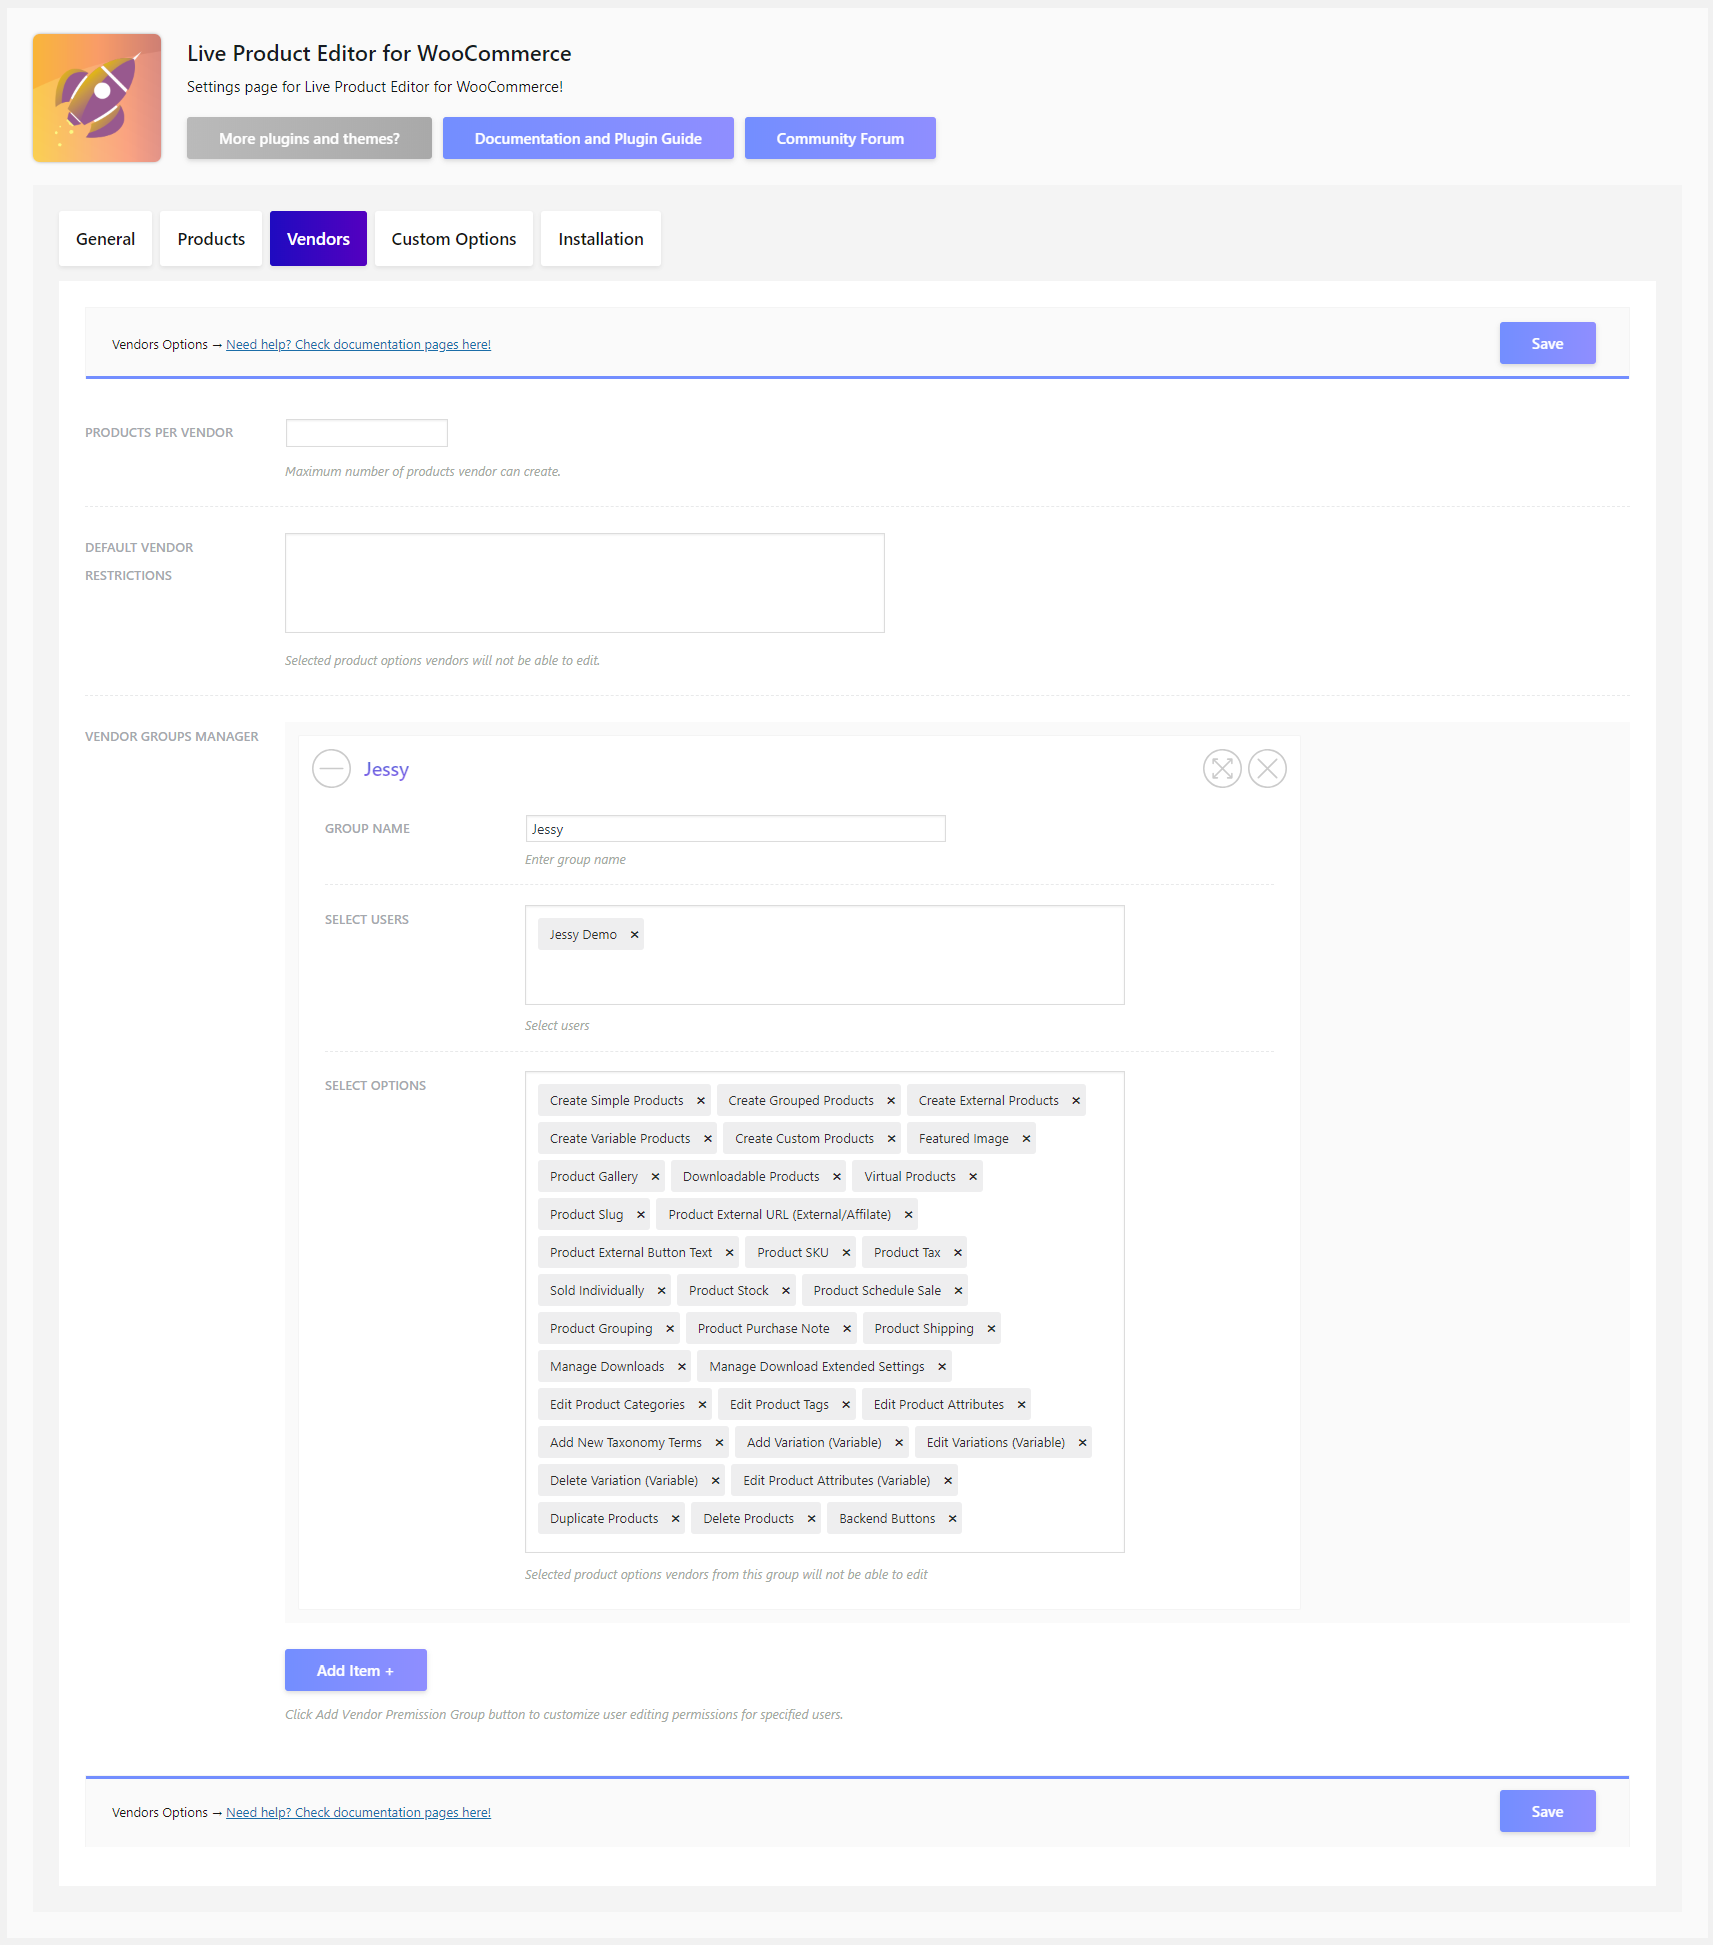 Live Product Editor for WooCommerce